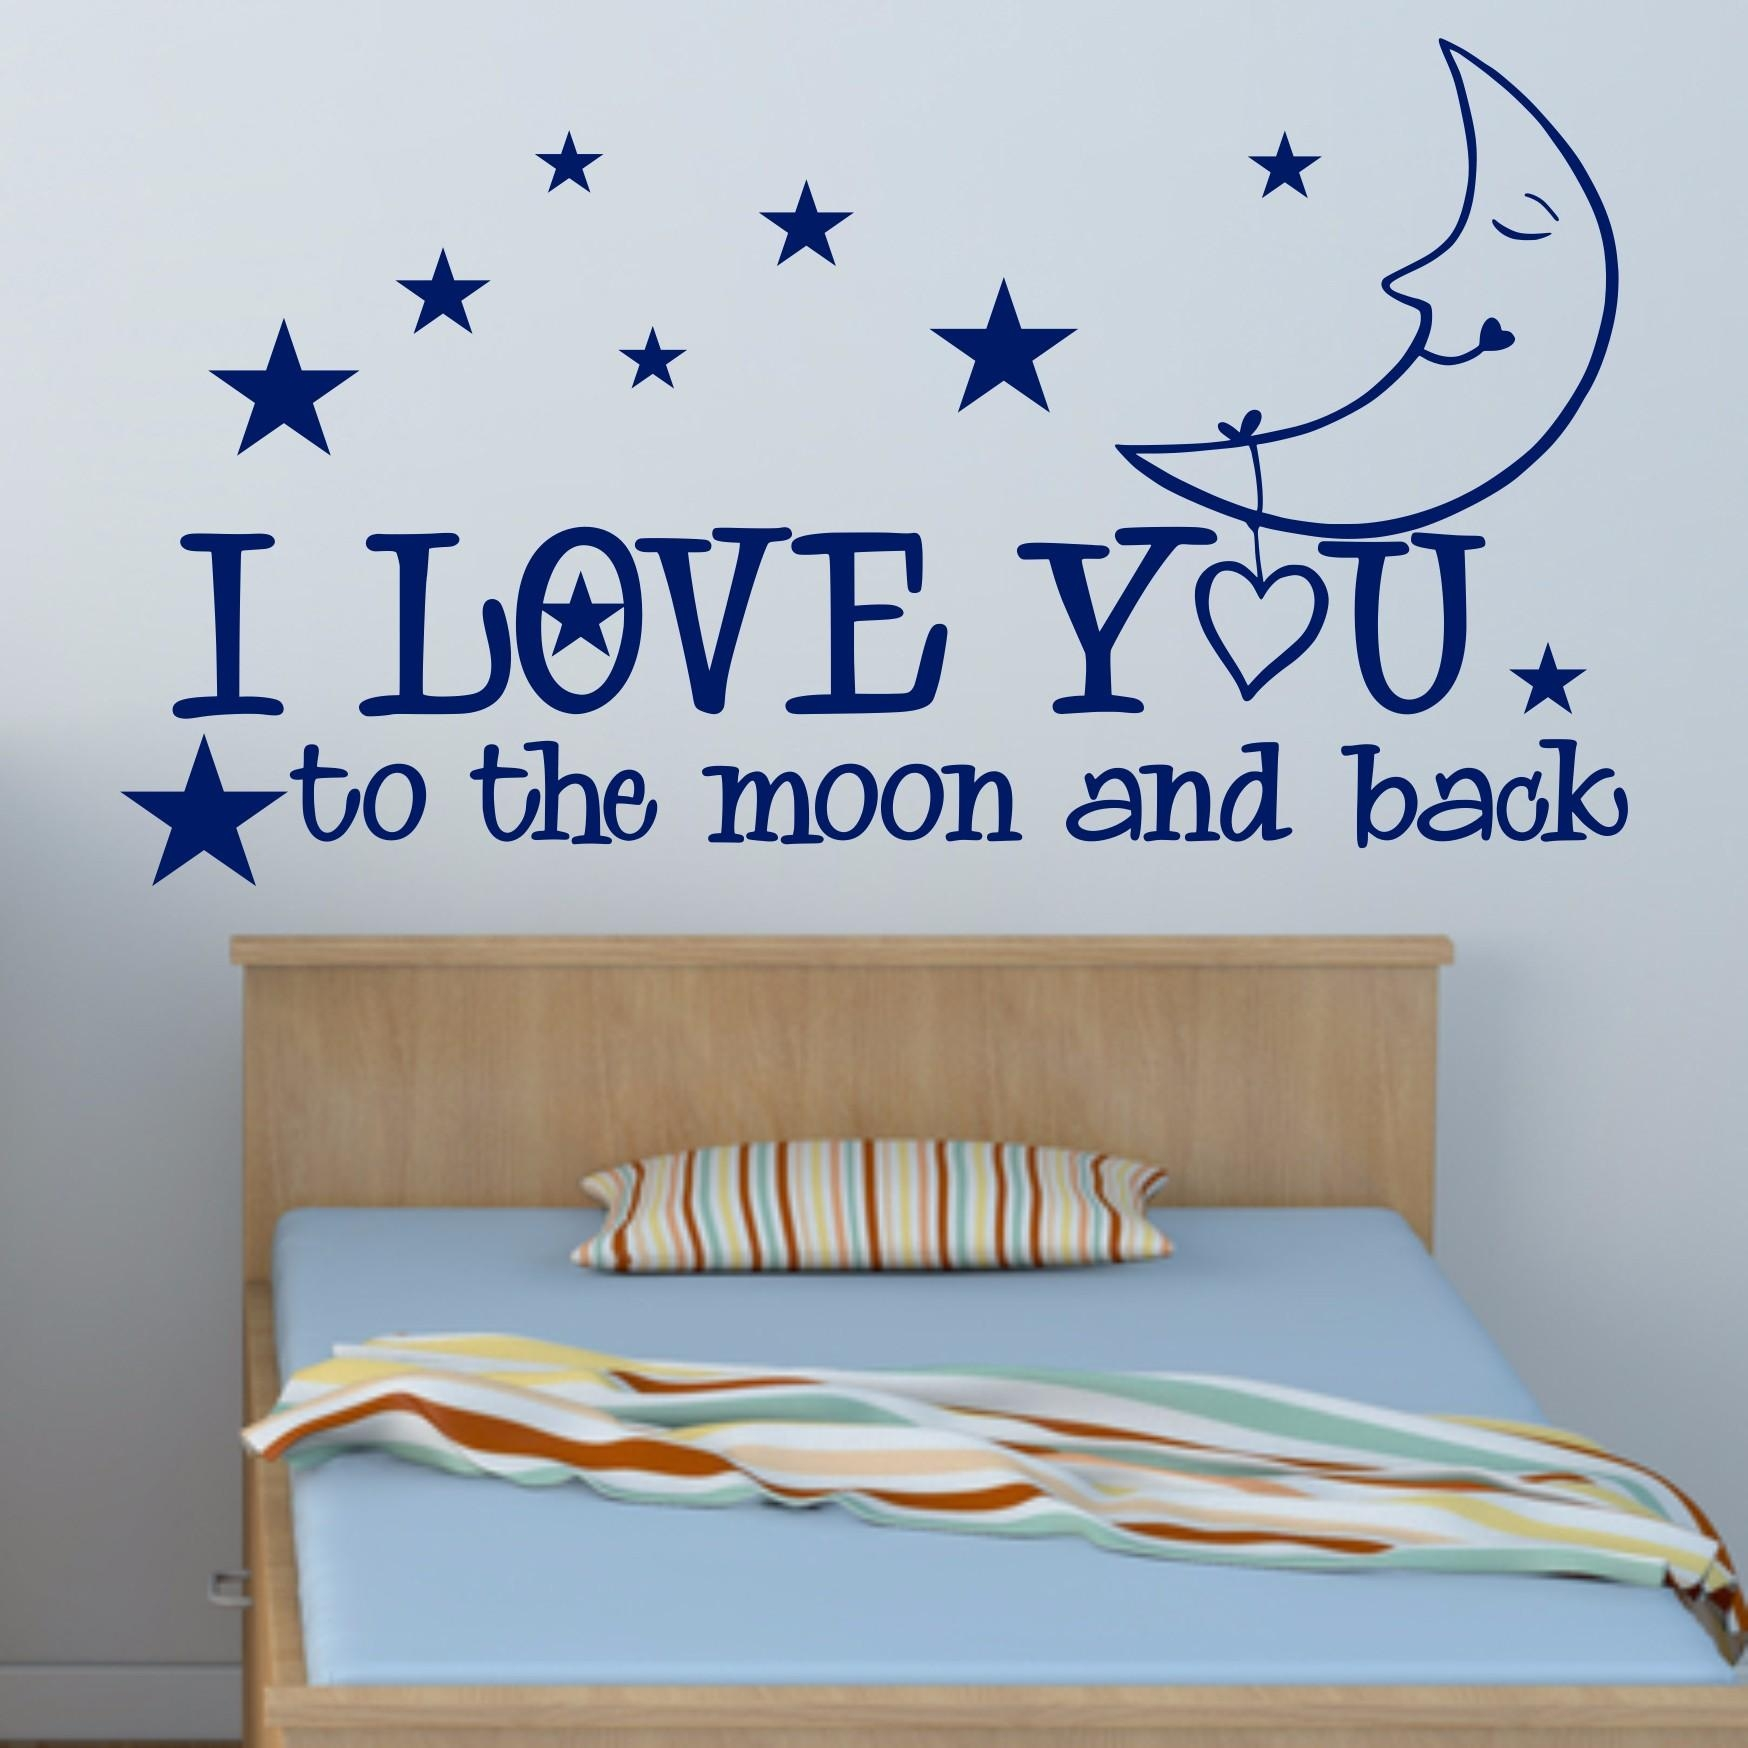 I Love You To The Moon And Back – Big Paw Print Wall Art Regarding Love You To The Moon And Back Wall Art (View 16 of 20)